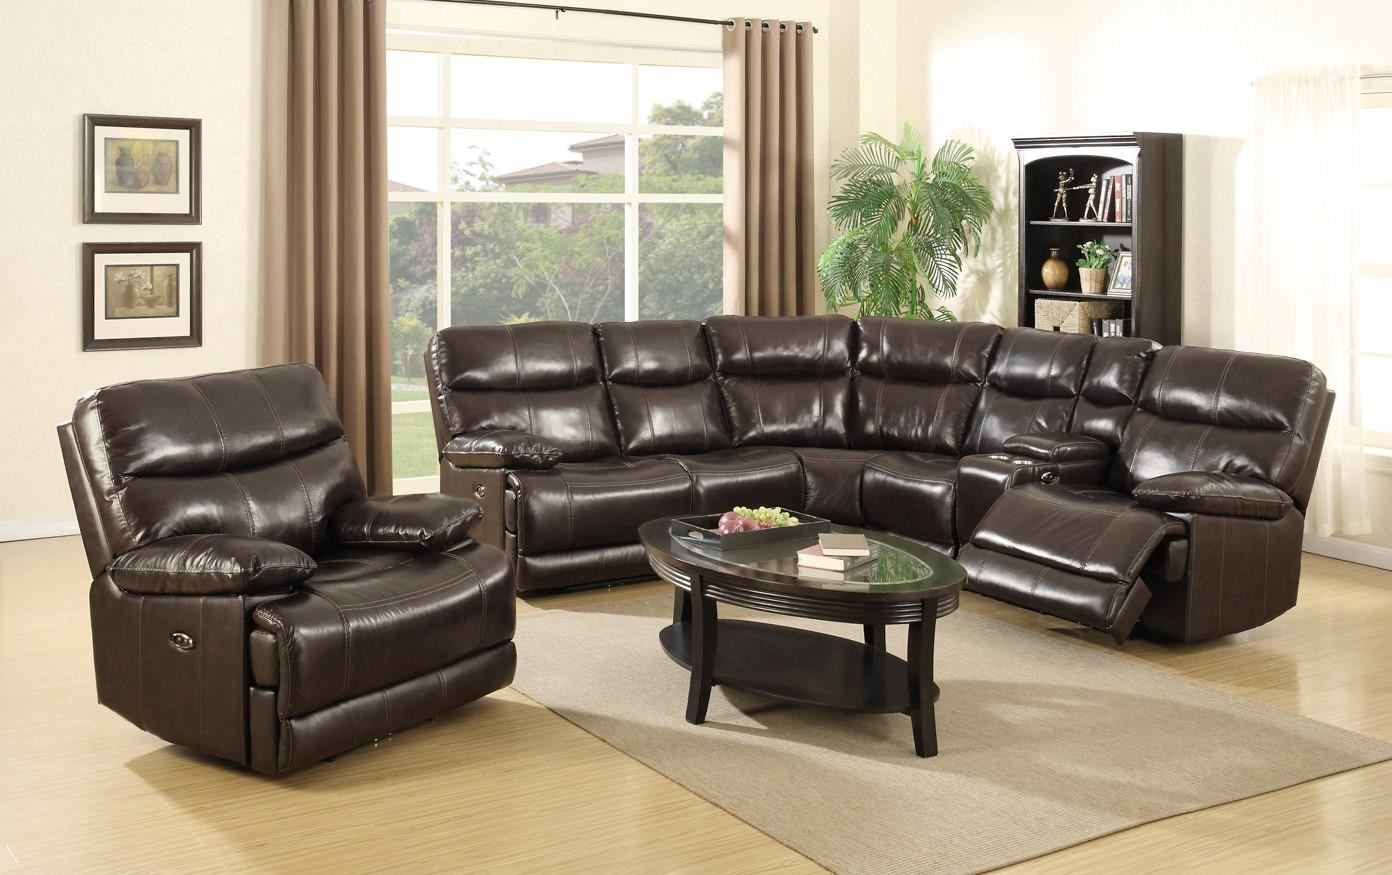 Power Reclining Sectional Sofa and Power Rec